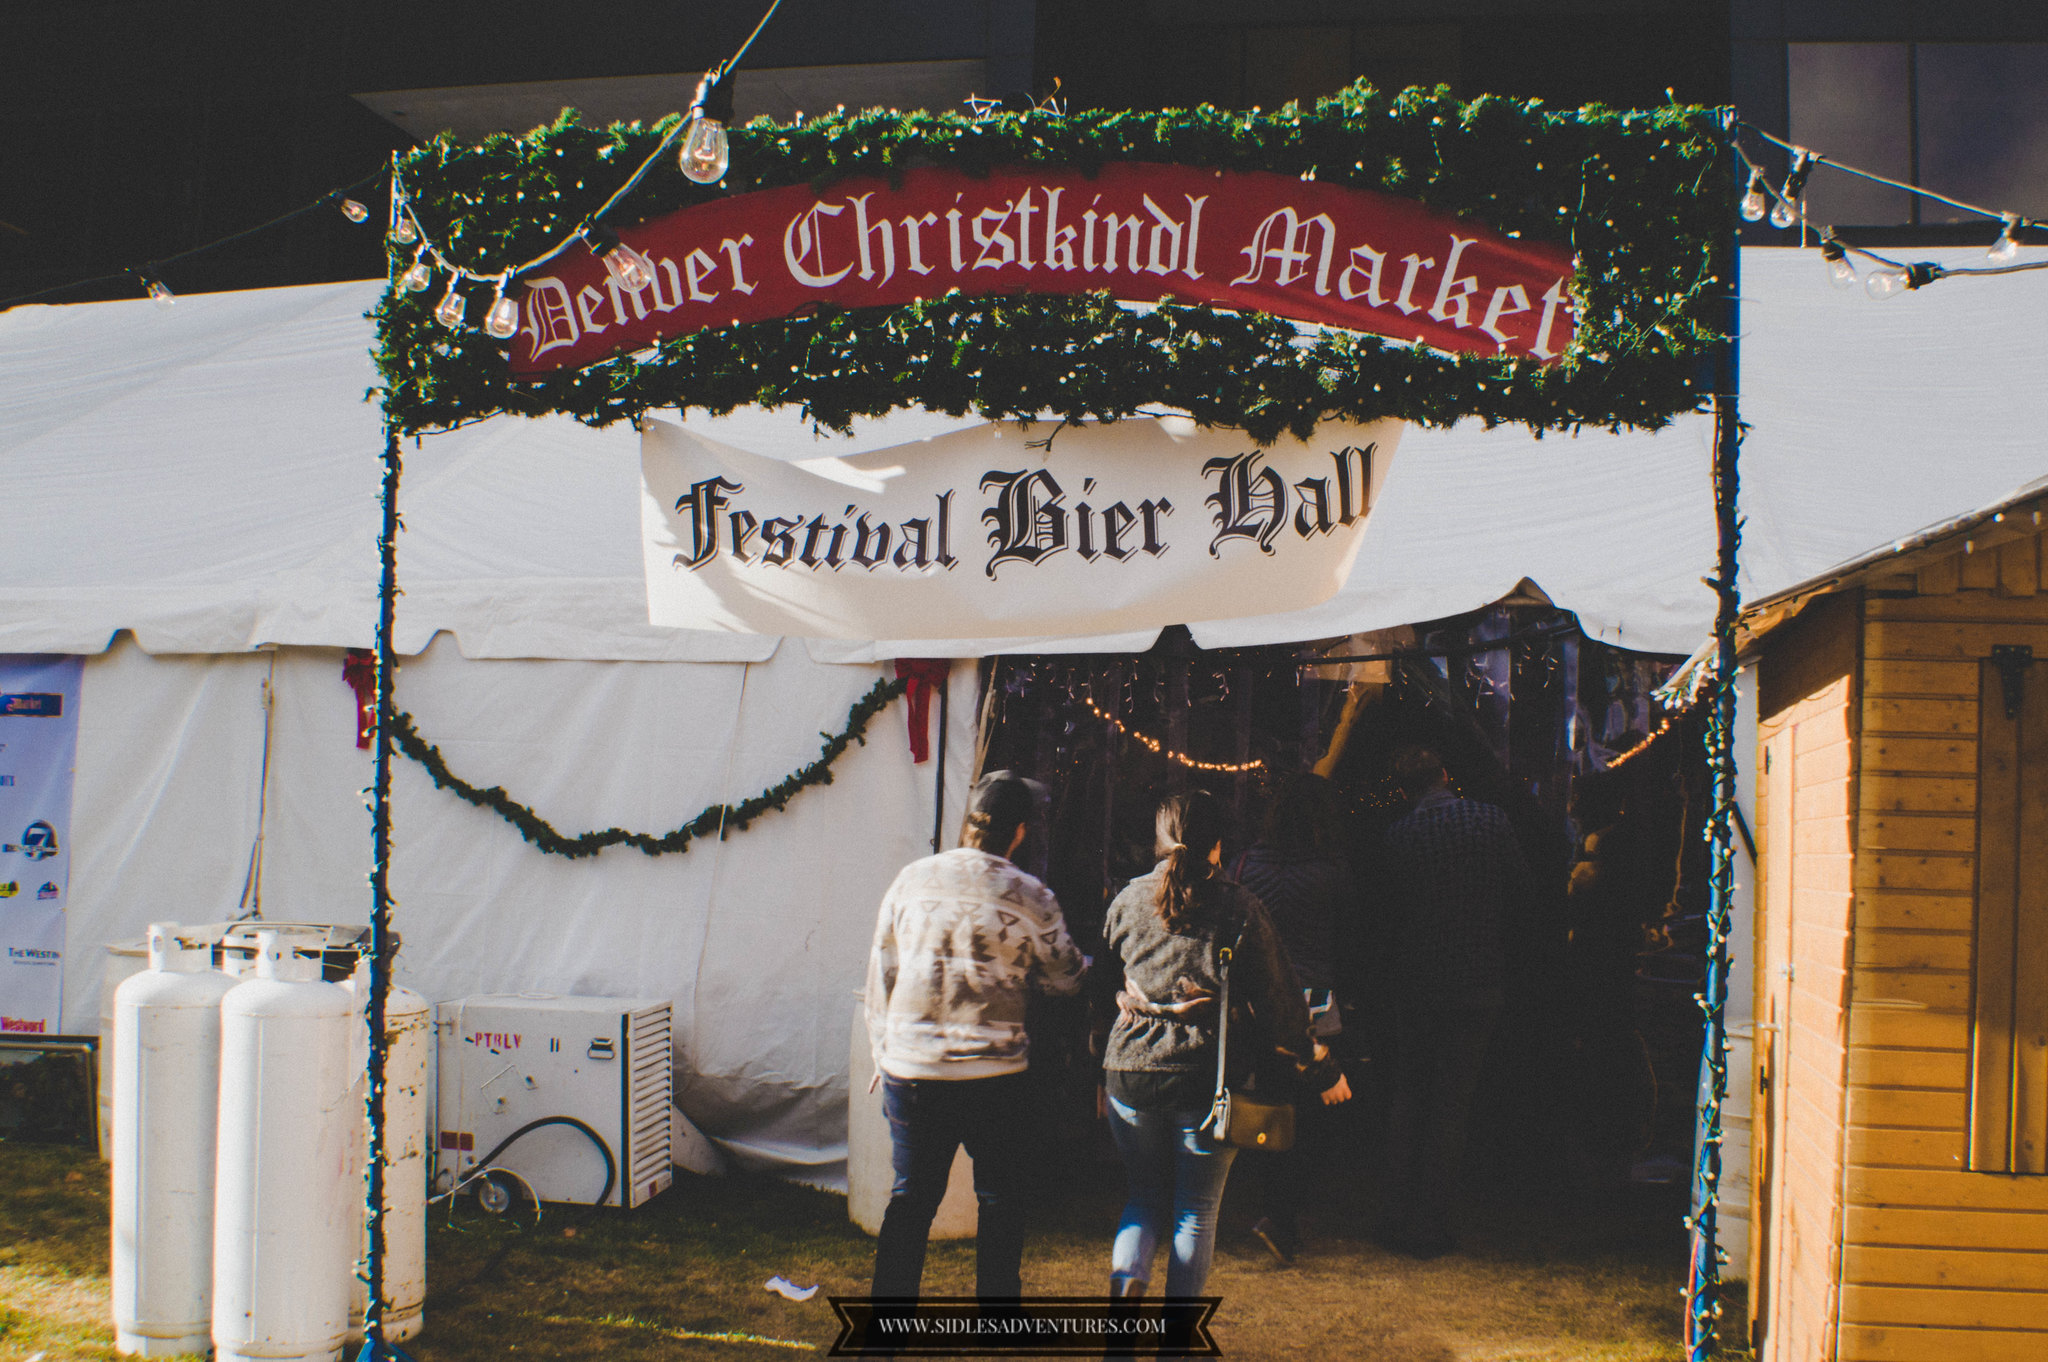 they also sell german beer in the tent as well but christmas markets are for glhwein fyi inside the tent is cash only there are atms in the market